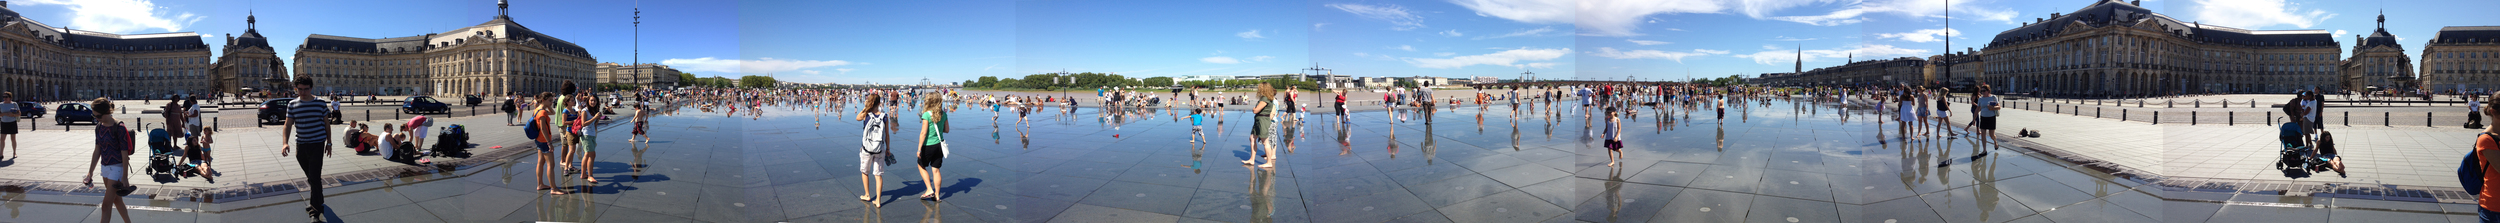 Le Miroir d'eau,   Place de la Bourse ,  in Bordeaux, France 2012 - Photo by JBM